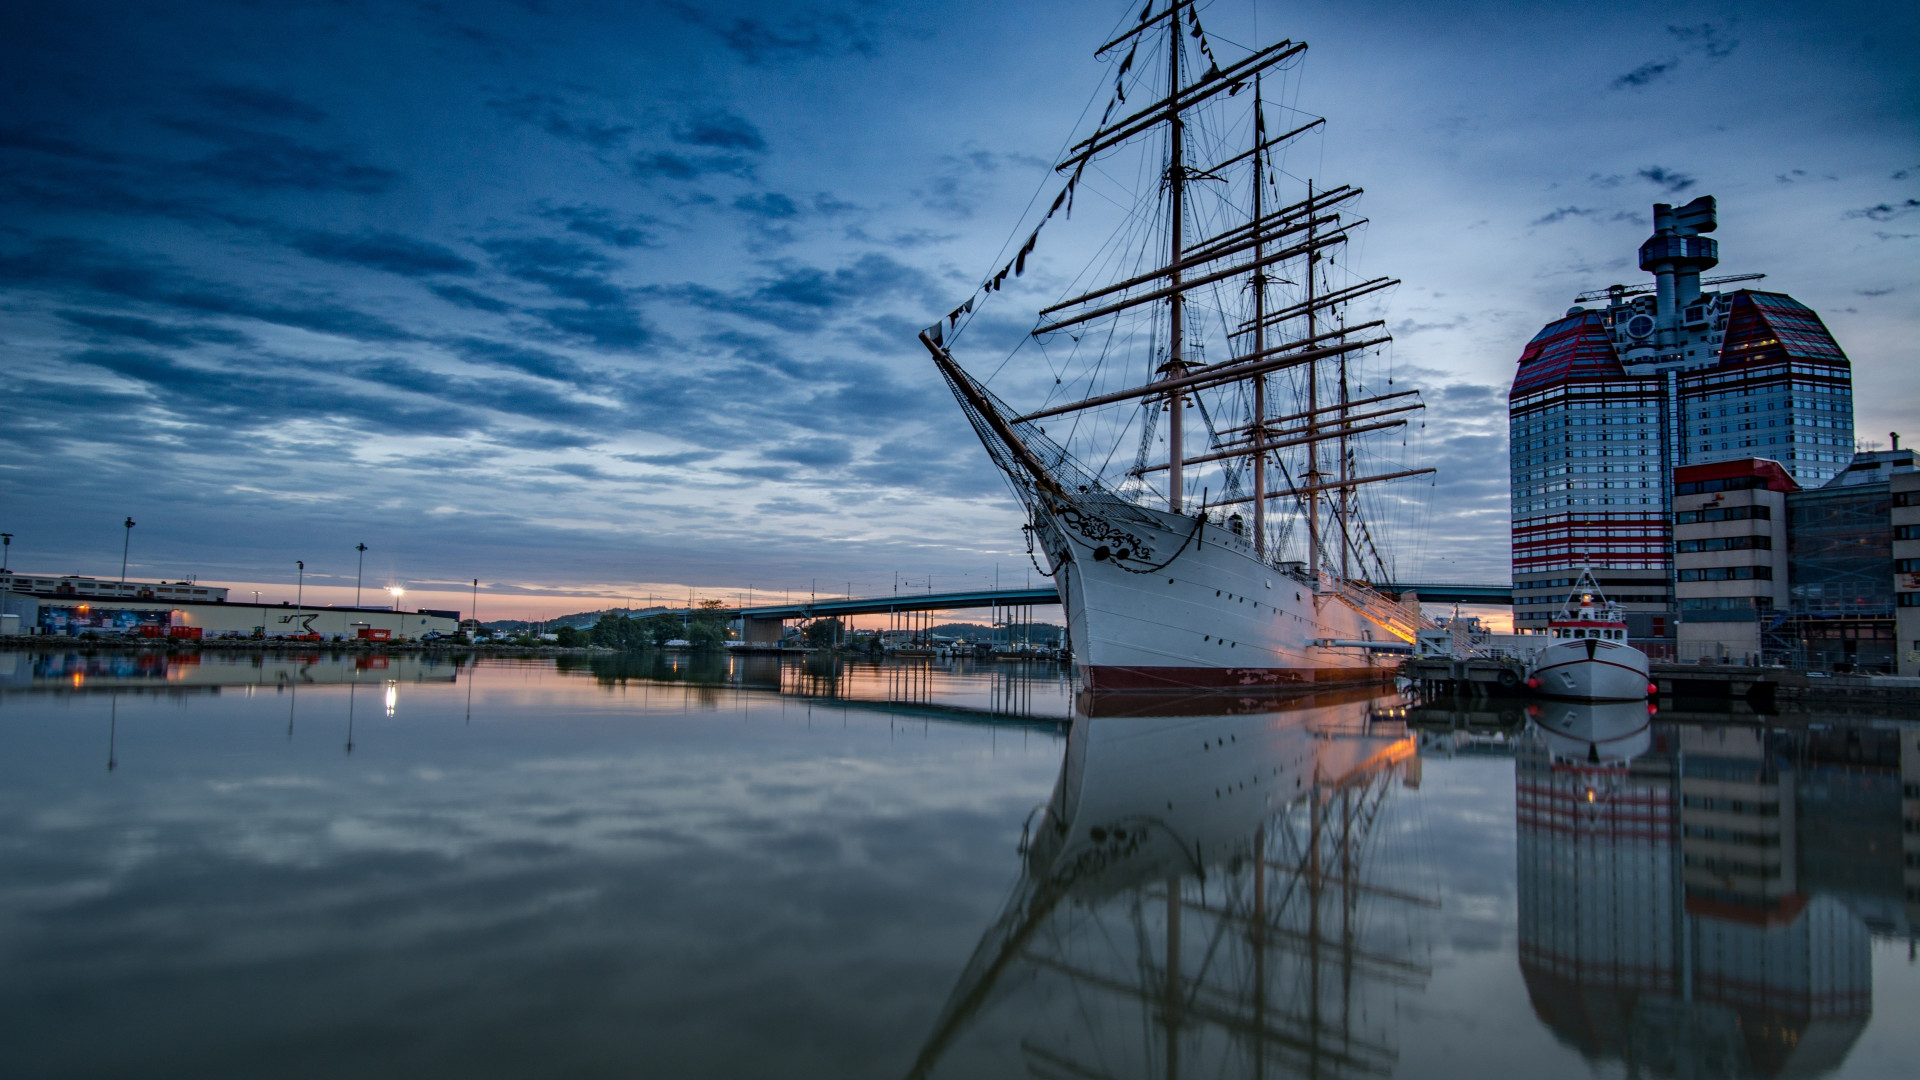 Historic wooden sailing ship in Gothenburg Harbour | 1920x1080 wallpaper